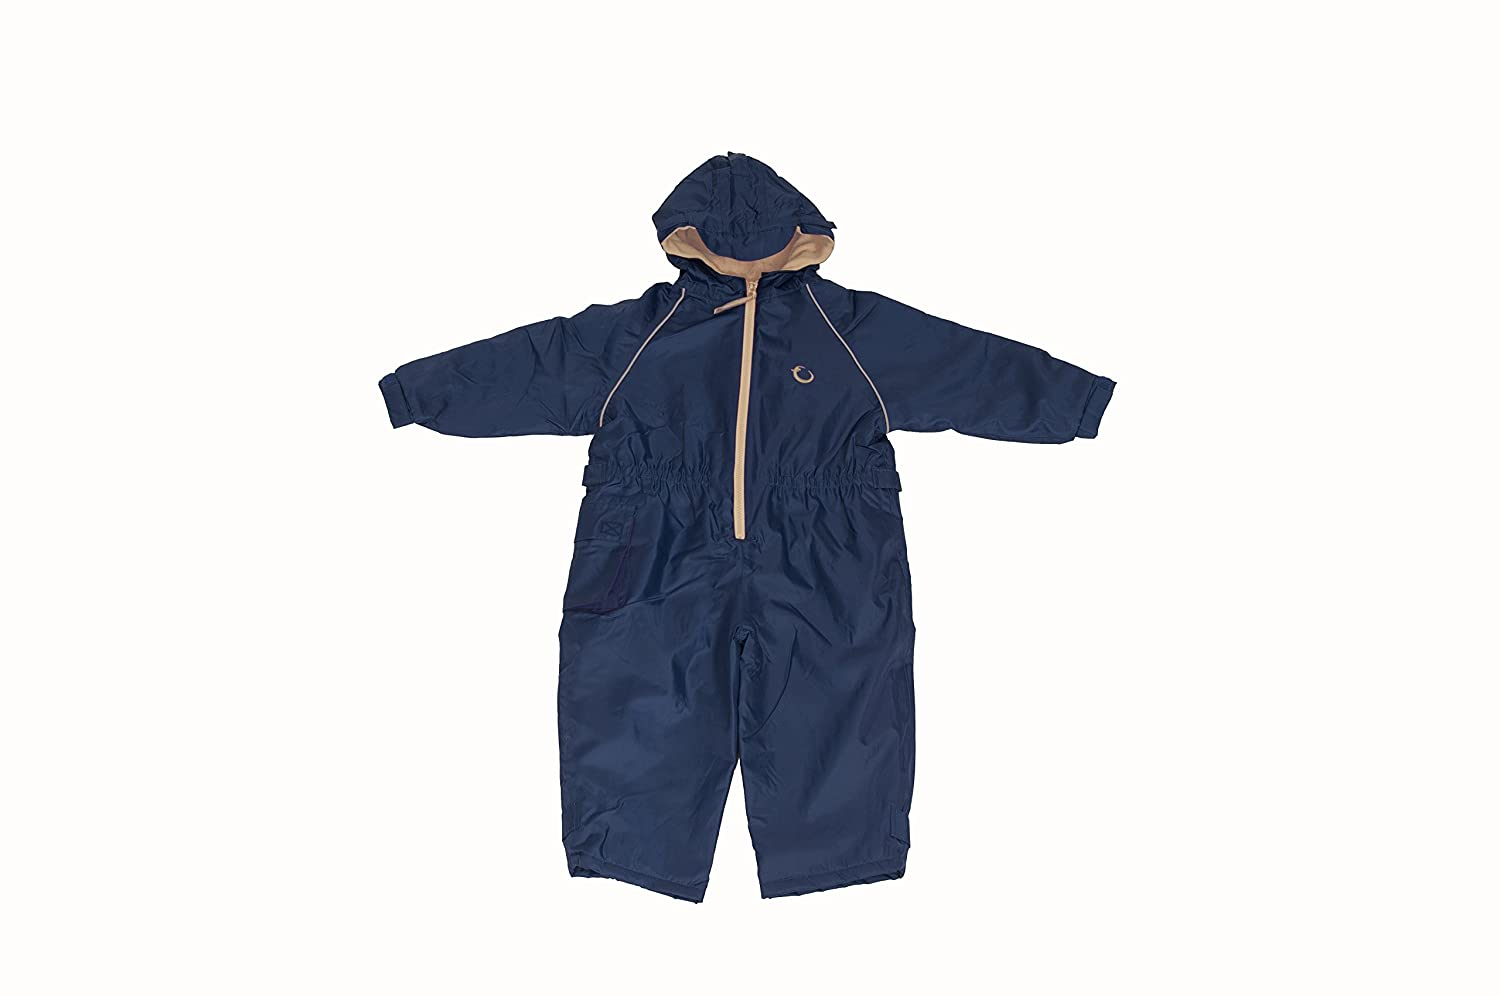 Hippychick Fleece Lined Waterproof All-in-One Suit - Navy/Sand, 2-3 Years HWNF2-3 5060248819081